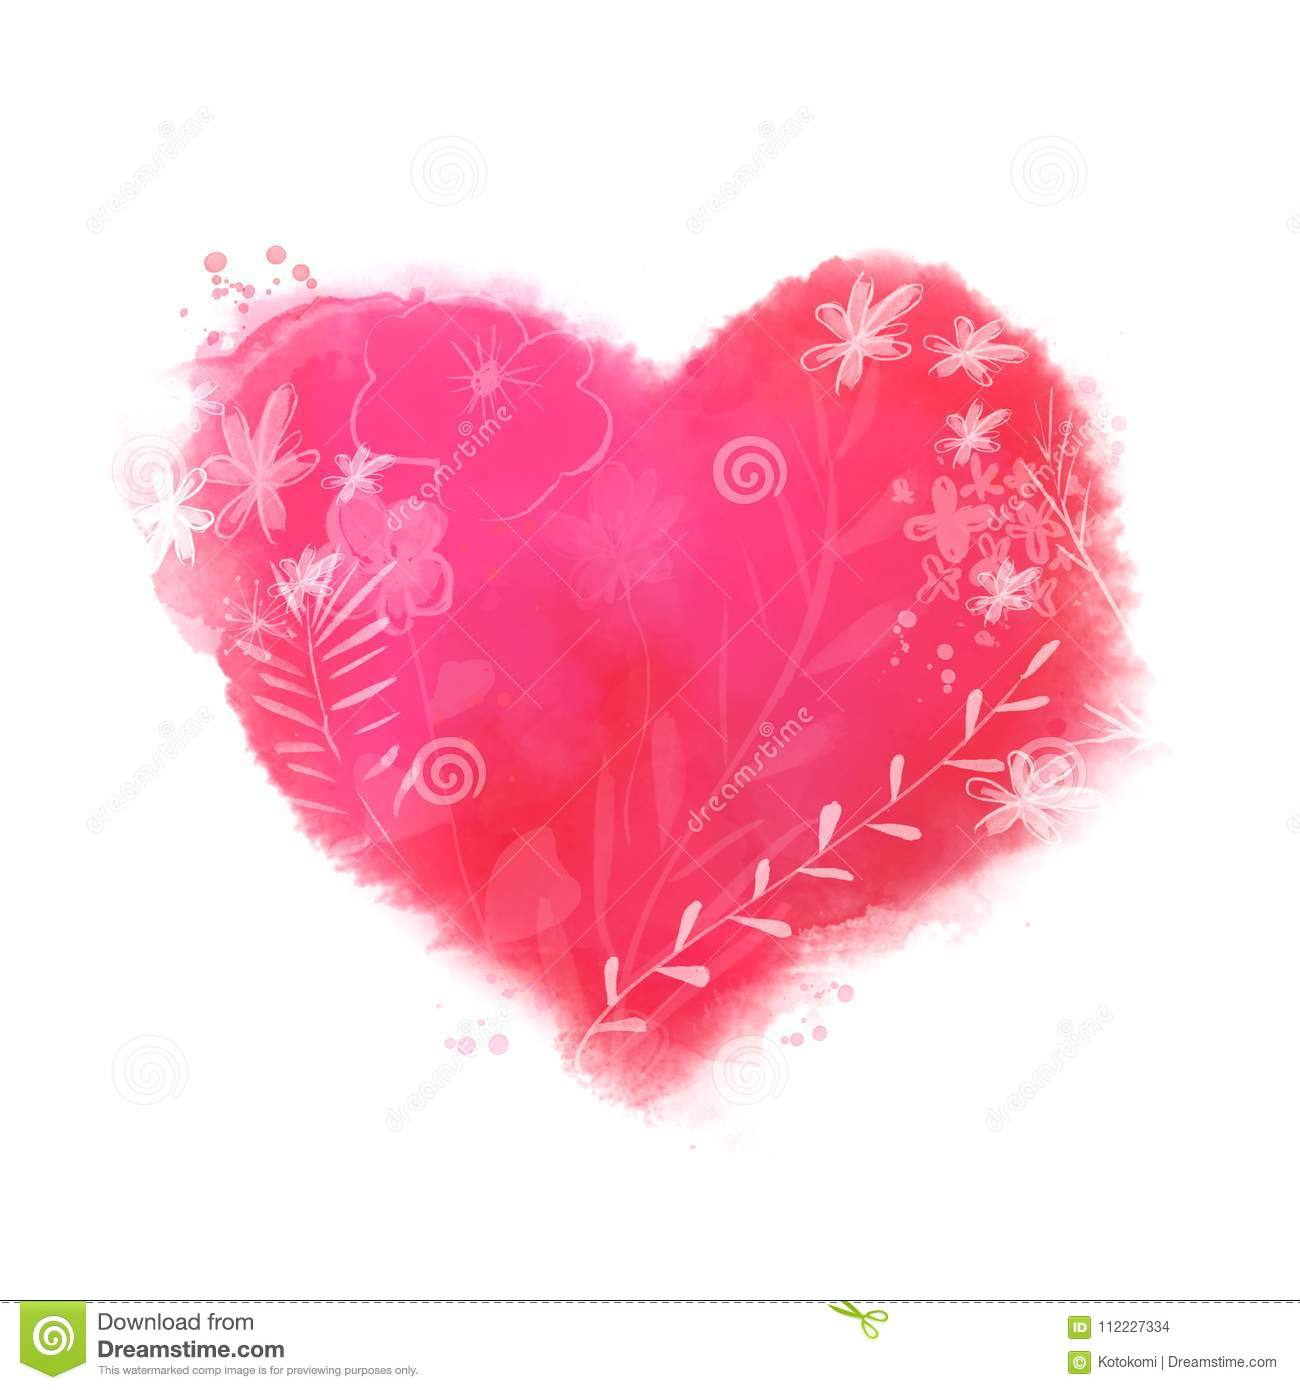 Beautiful Painted Heart With Flowers And Leaves Love Symbol For